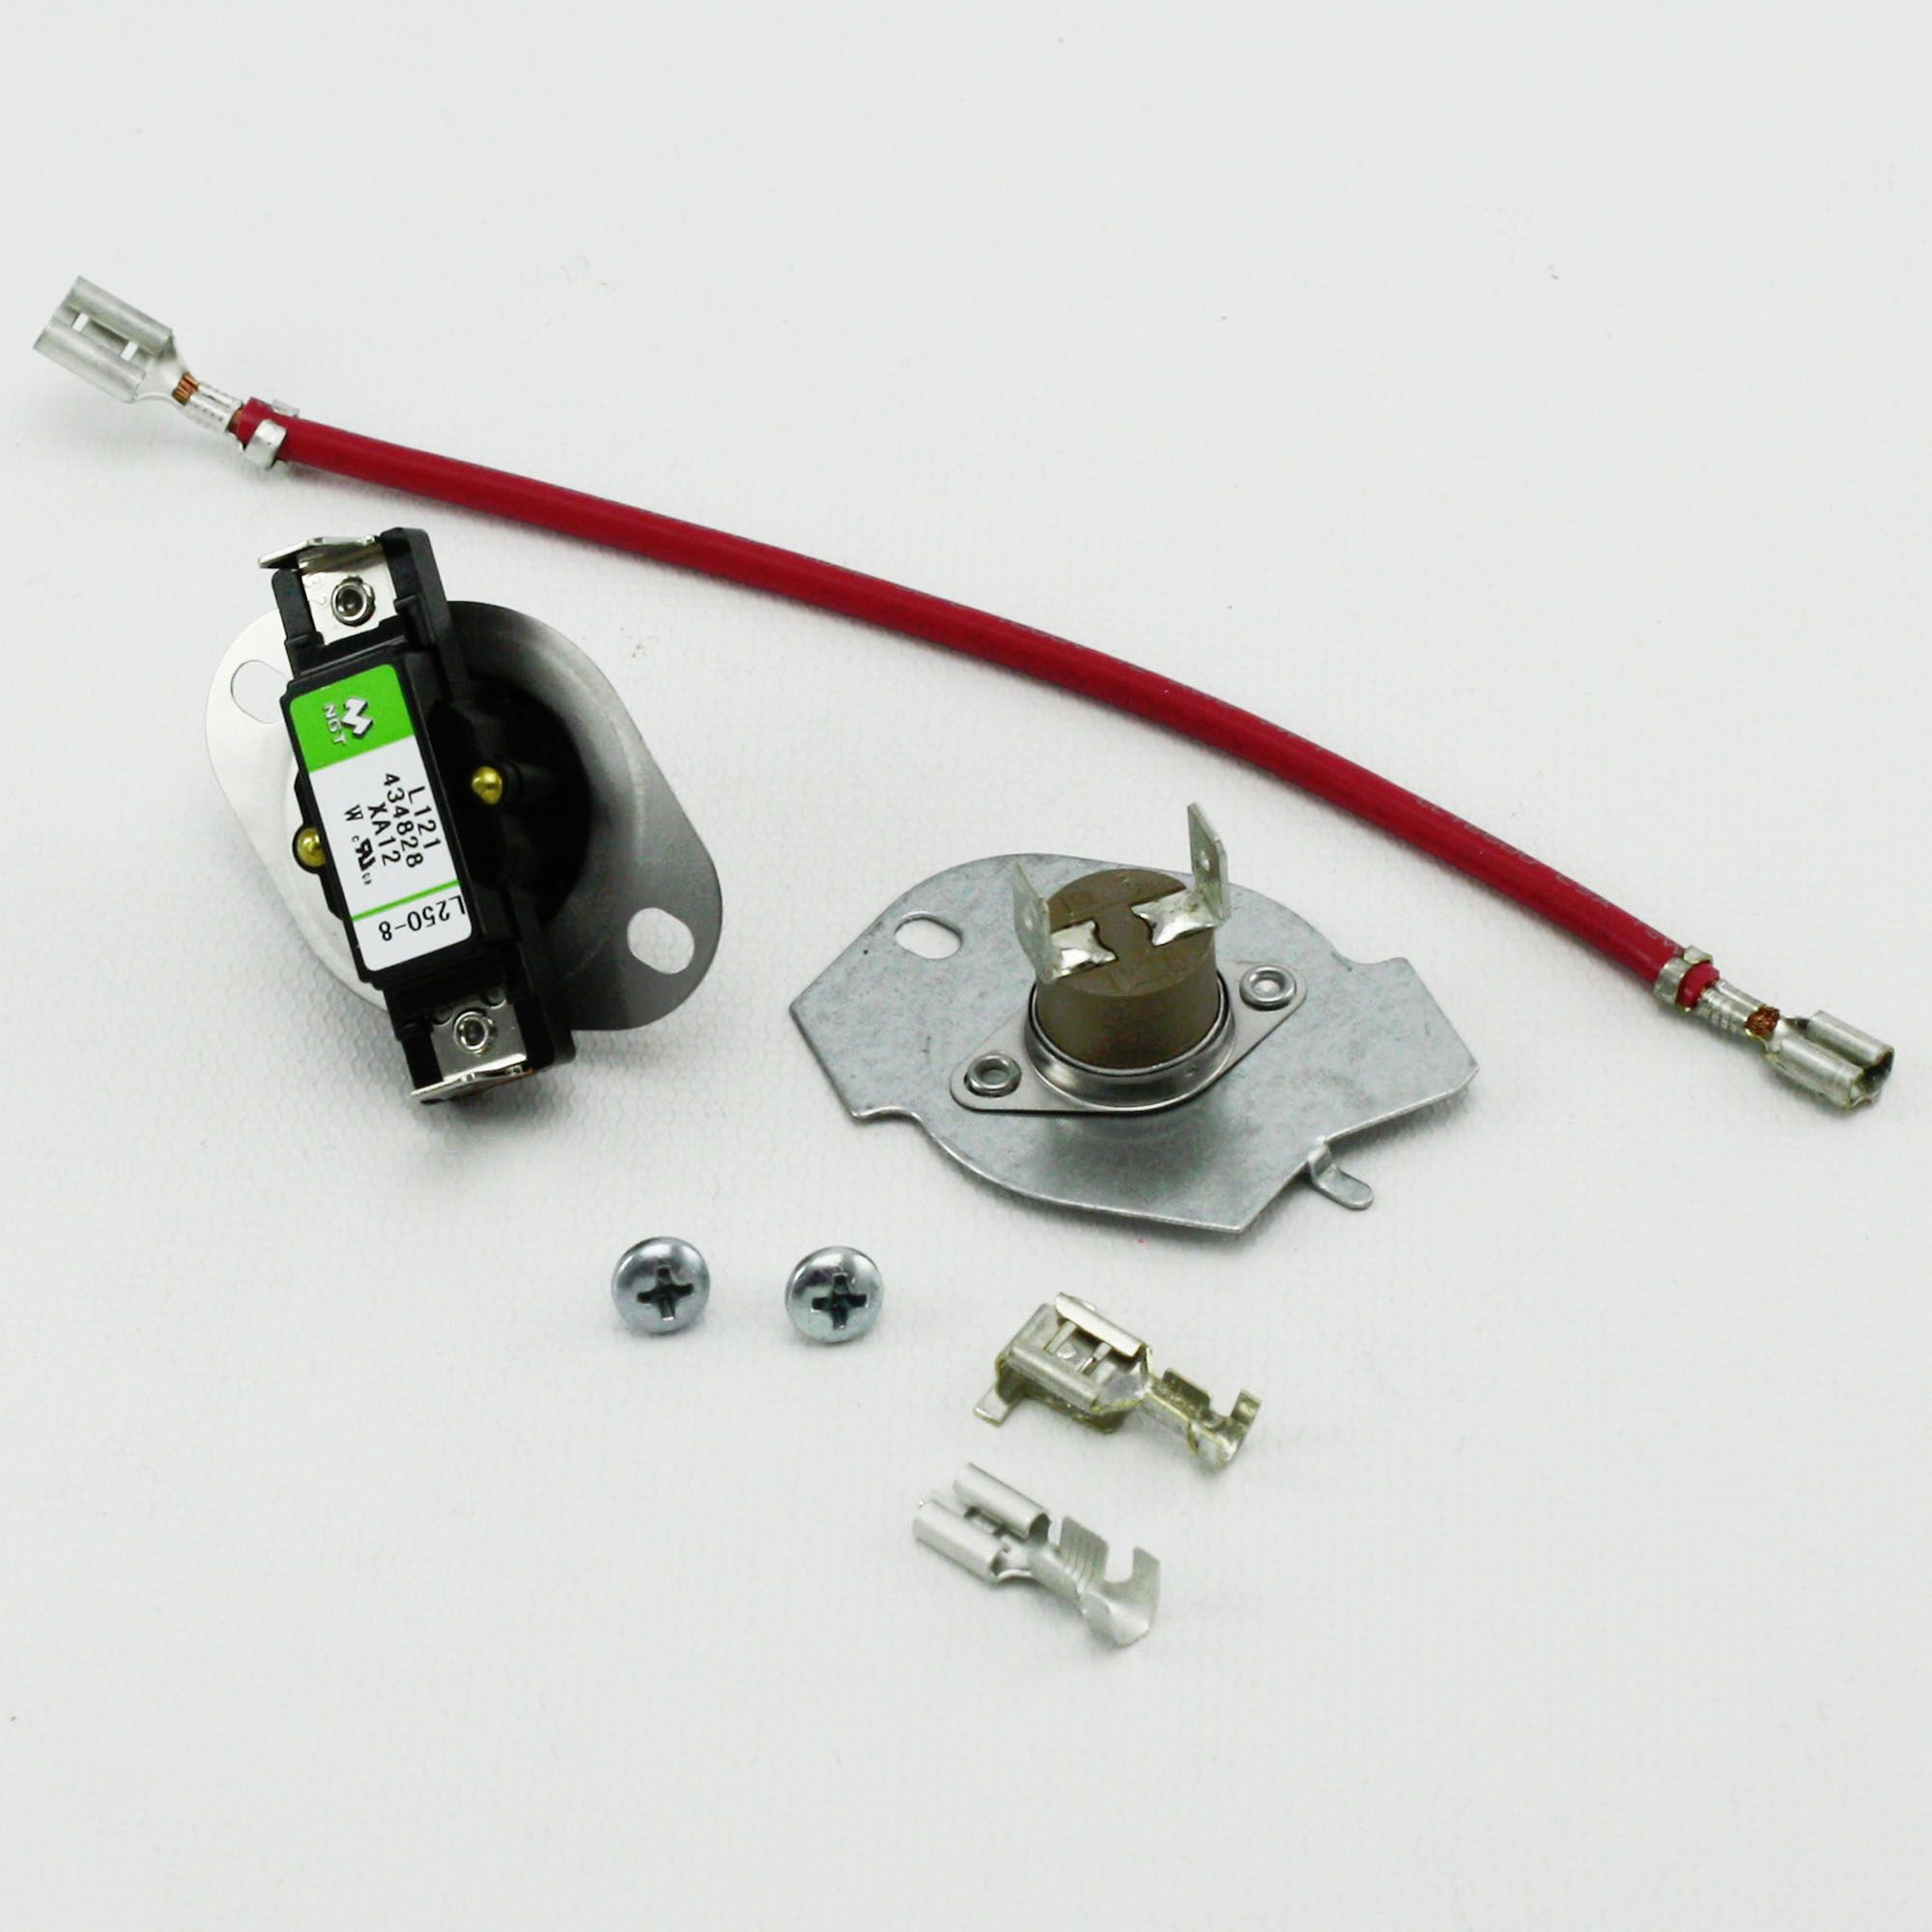 N Napco Thermostat Kit For Whirlpool Dryer Thermostat